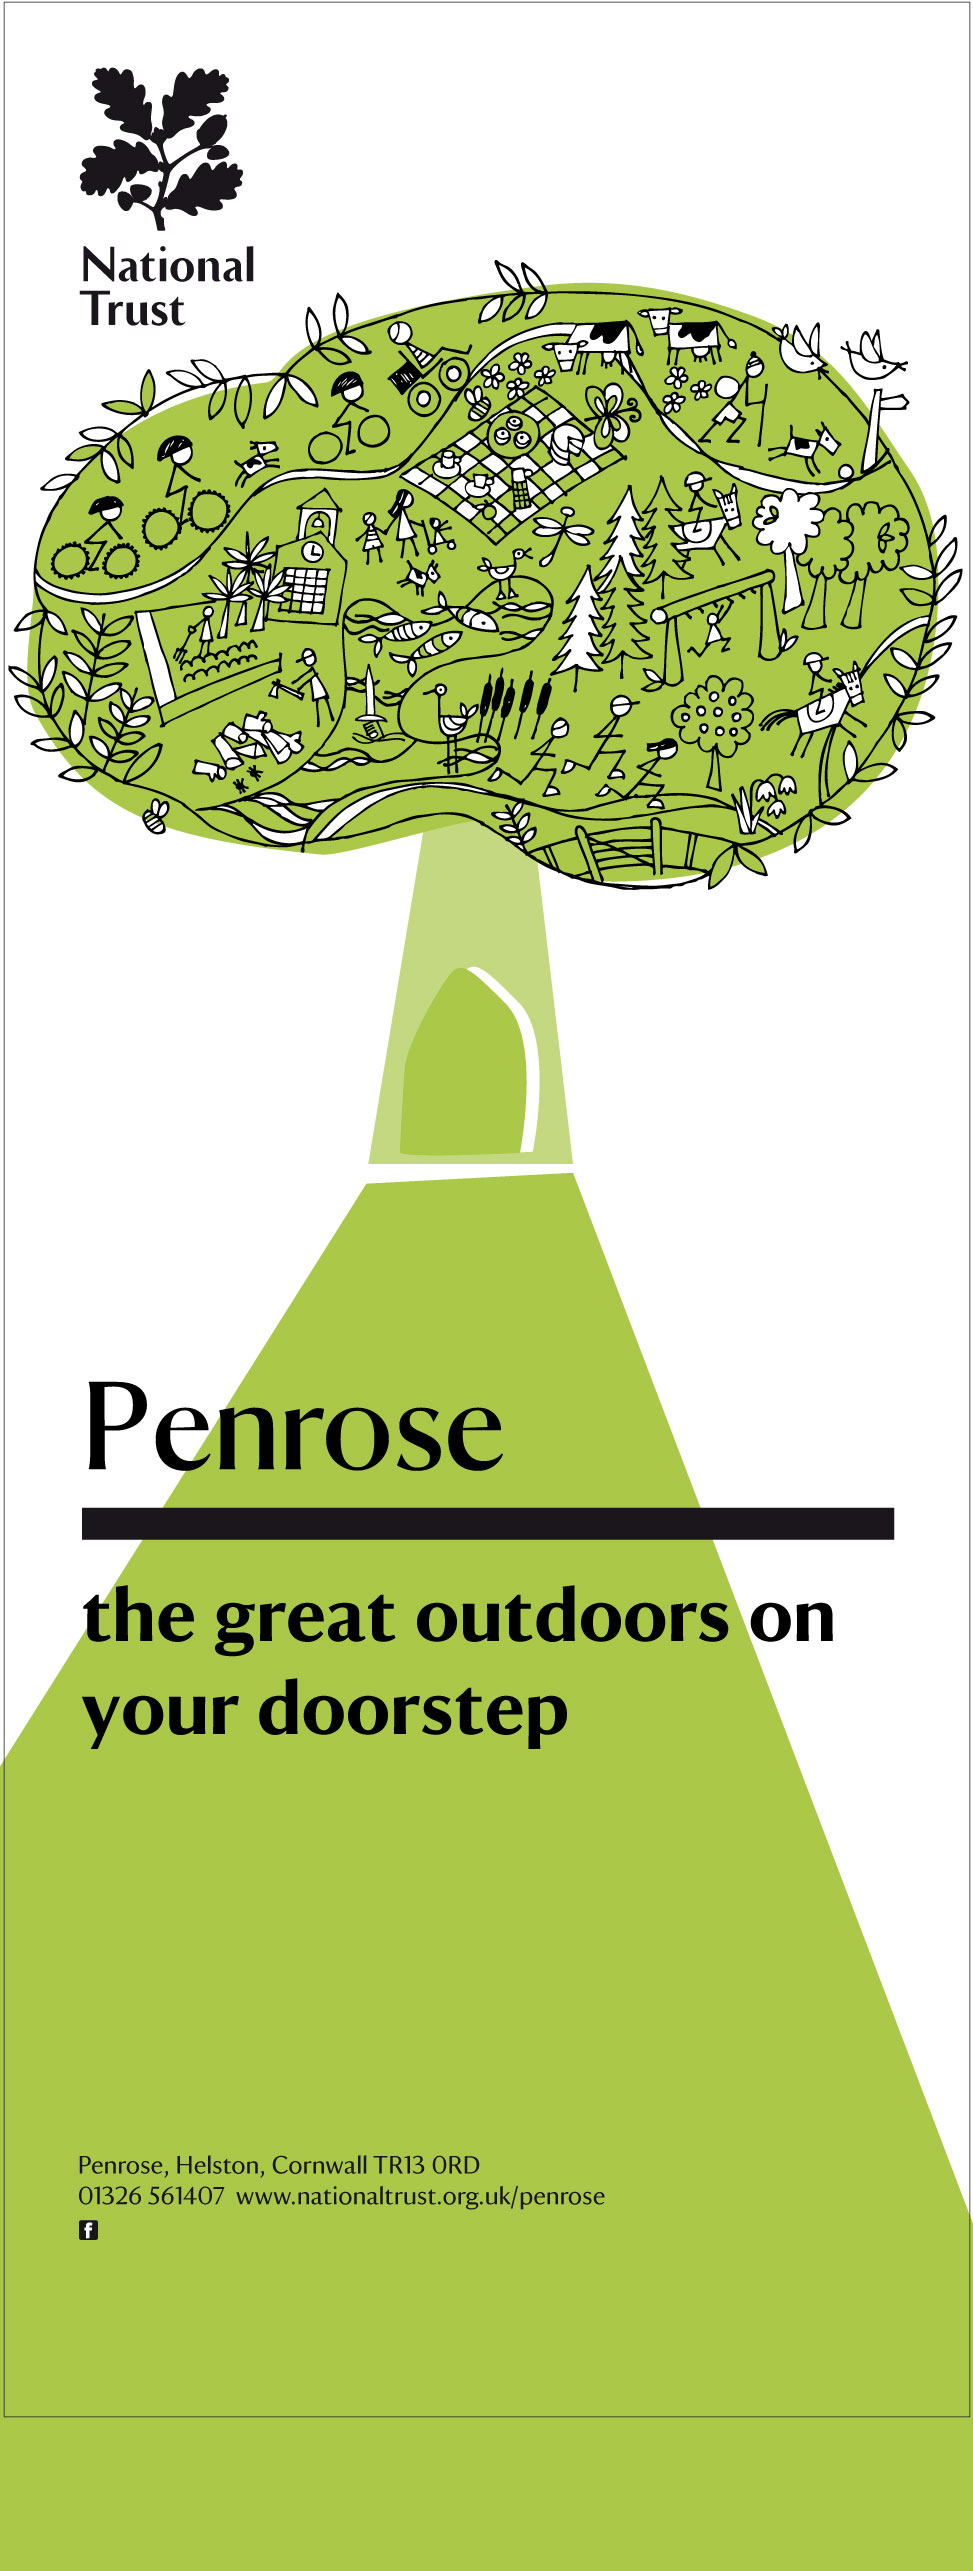 National Trust, Penrose, by Barefoot